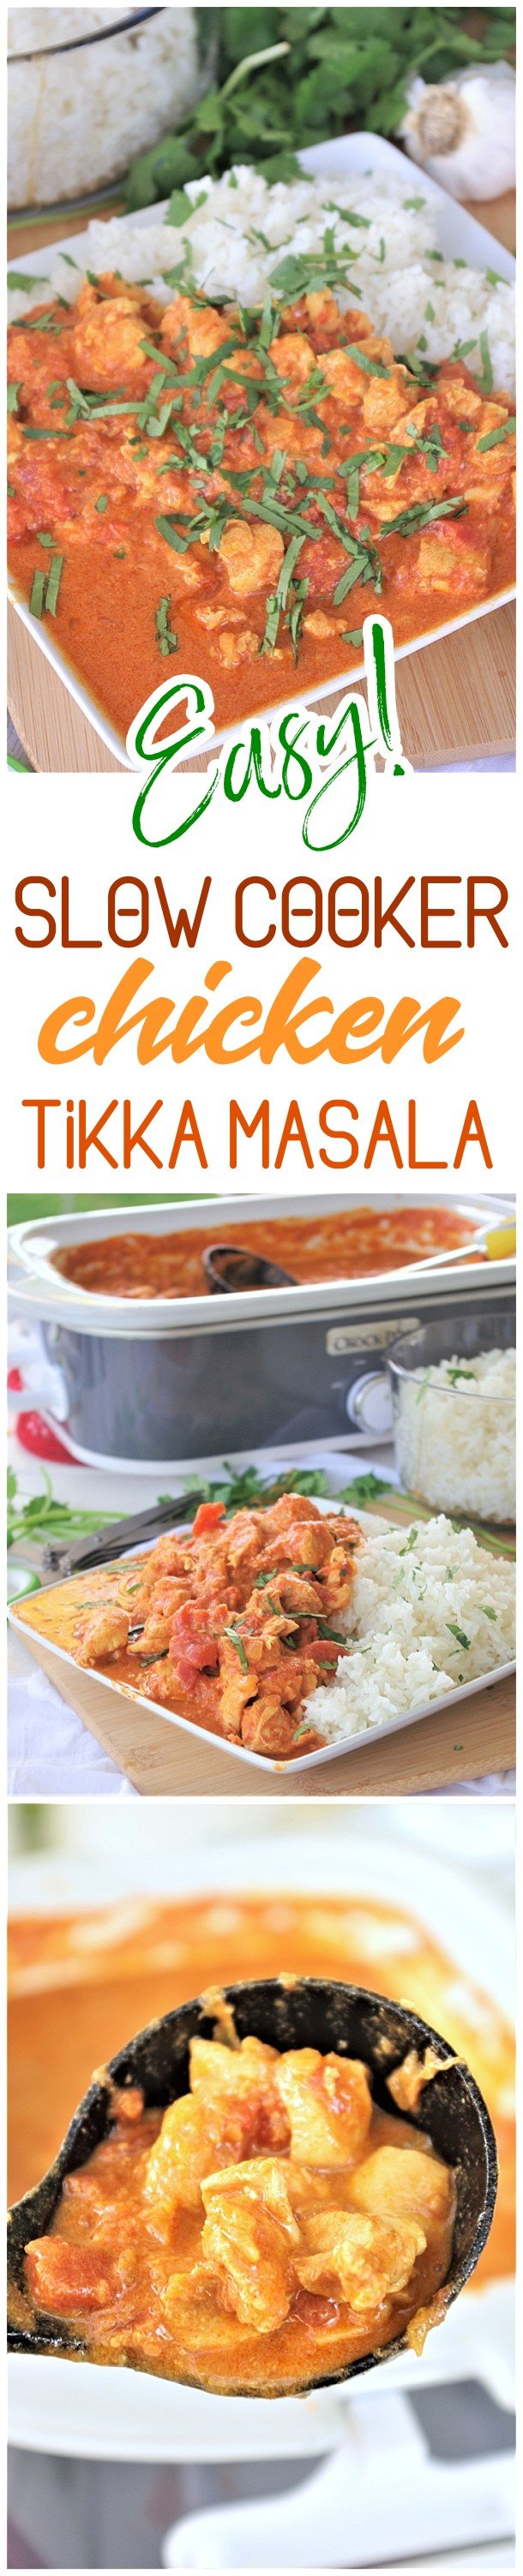 Slow Cooker Chicken Tikka Masala Easy Yummy Family Supper Recipe via Dreaming in DIY - This easy family style slow cooker recipe for chicken tikka masala is going to become your new go-to and standby supper for busy weeknights and lazy weekends.  It's just so buttery and full of melt in your mouth Indian inspired deliciousness. via Dreaming in DIY #crockpottikkamasala #tikkamasala #tikkamisalarecipe #chickenrecipes #slowcookertikkamasala #slowcookerrecipes #simplerecipes #simplefamilymeals #simplefamilyrecipes